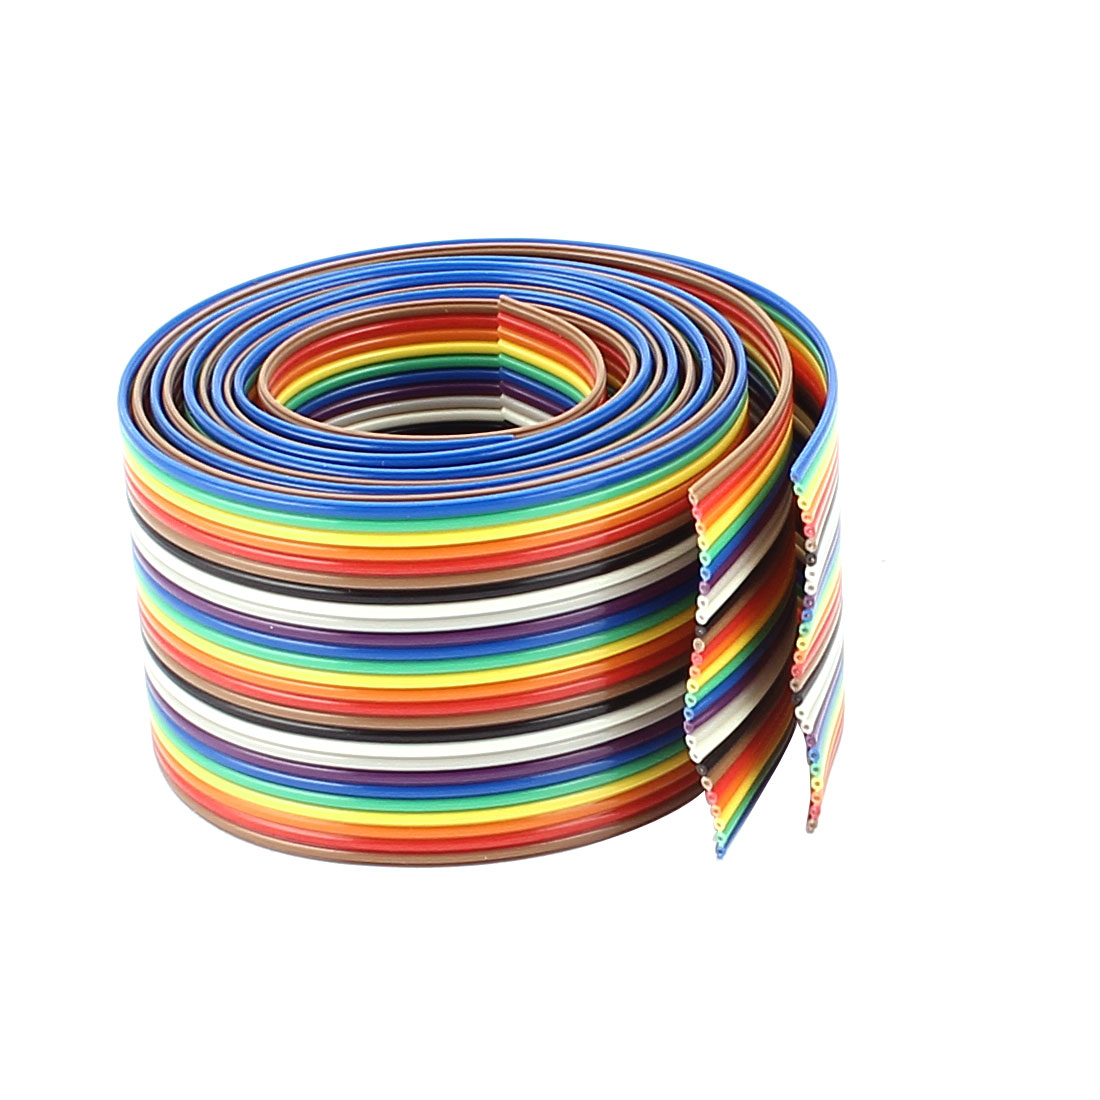 2pcs 67cm 2.2ft Long 26Pin 1.27mm Pitch Conductor Rainbow Color Flat Ribbon Cable IDC Wire